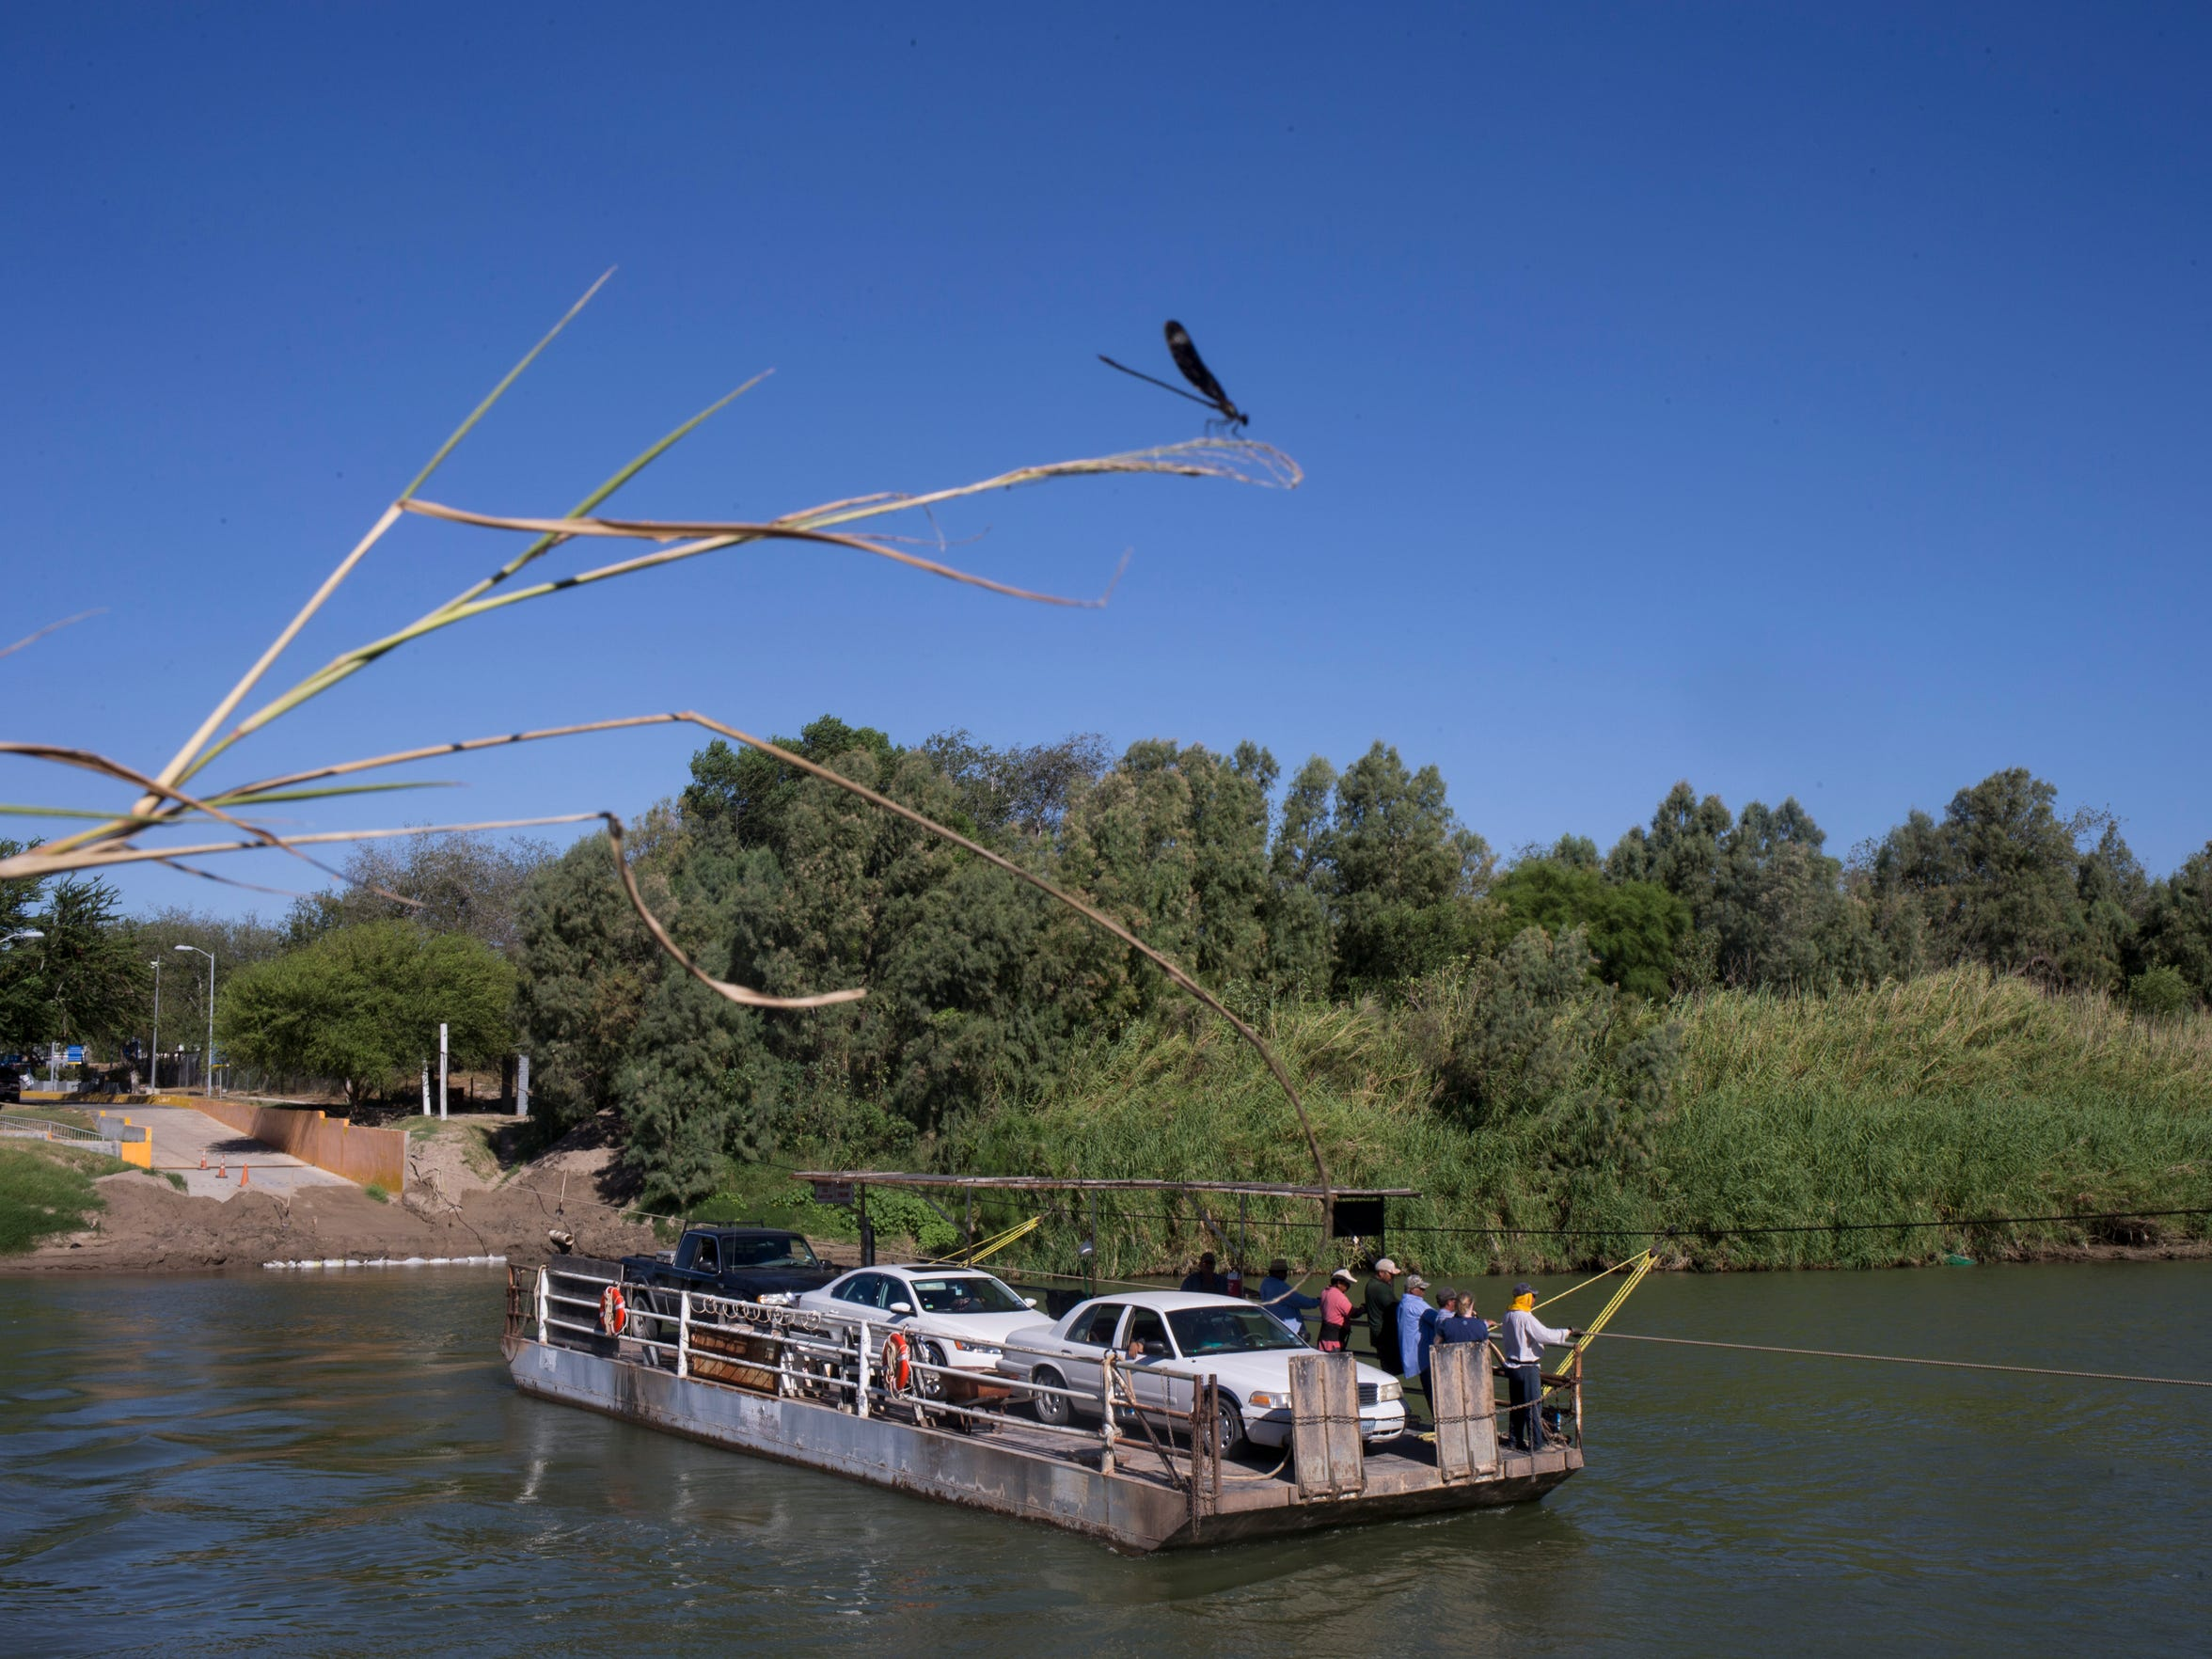 The Los Ebanos ferry carries three vehicles per trip across the Rio Grande between the Mexican state of Tamaulipas and Texas.